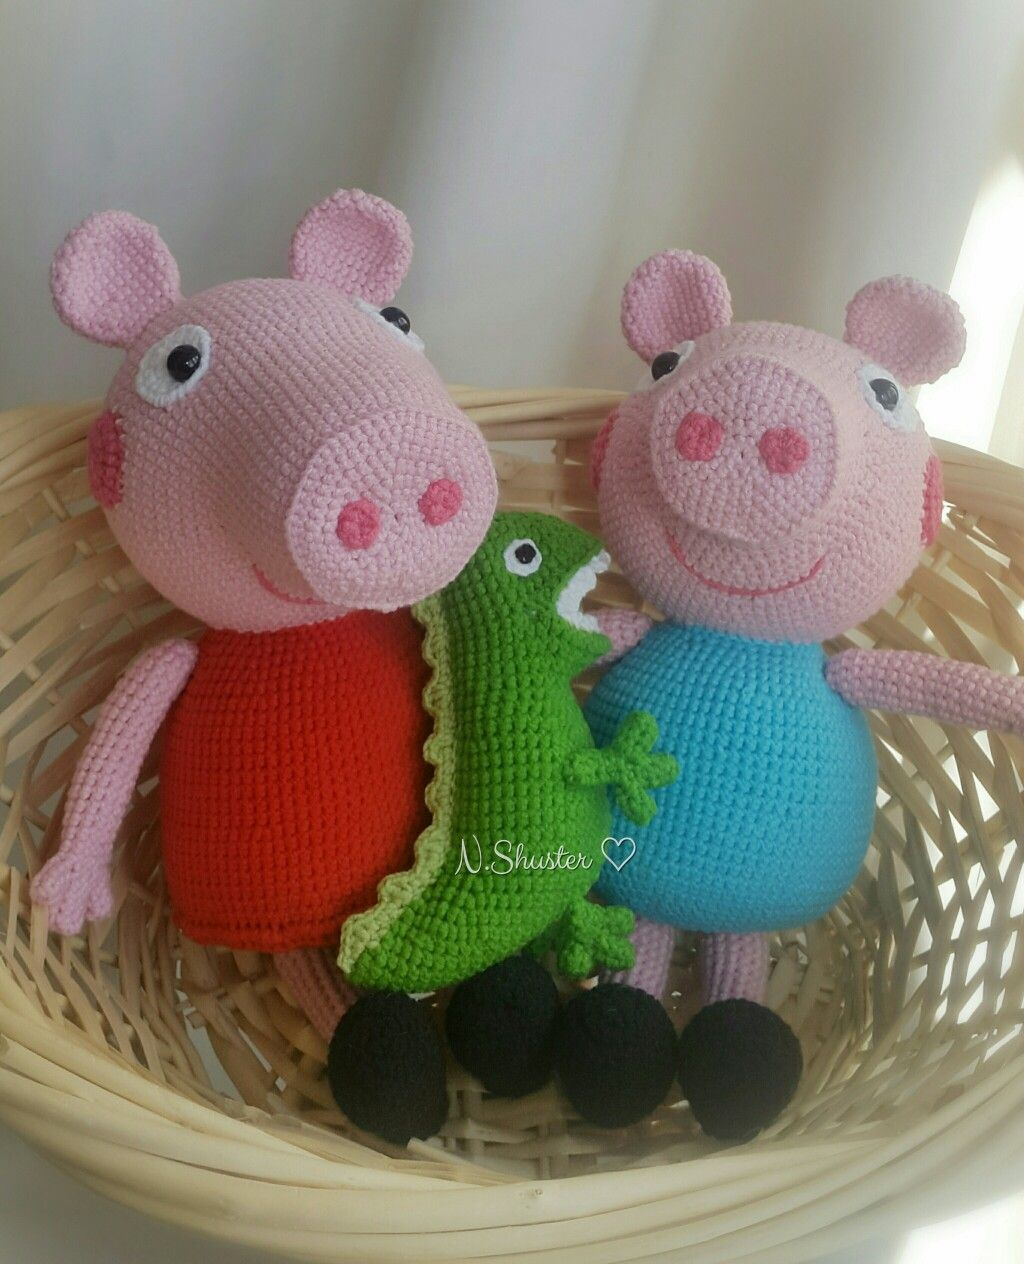 Crochet Peppa Pig Amigurumi Free Patterns | Crochet pig, Crochet ... | 1264x1024